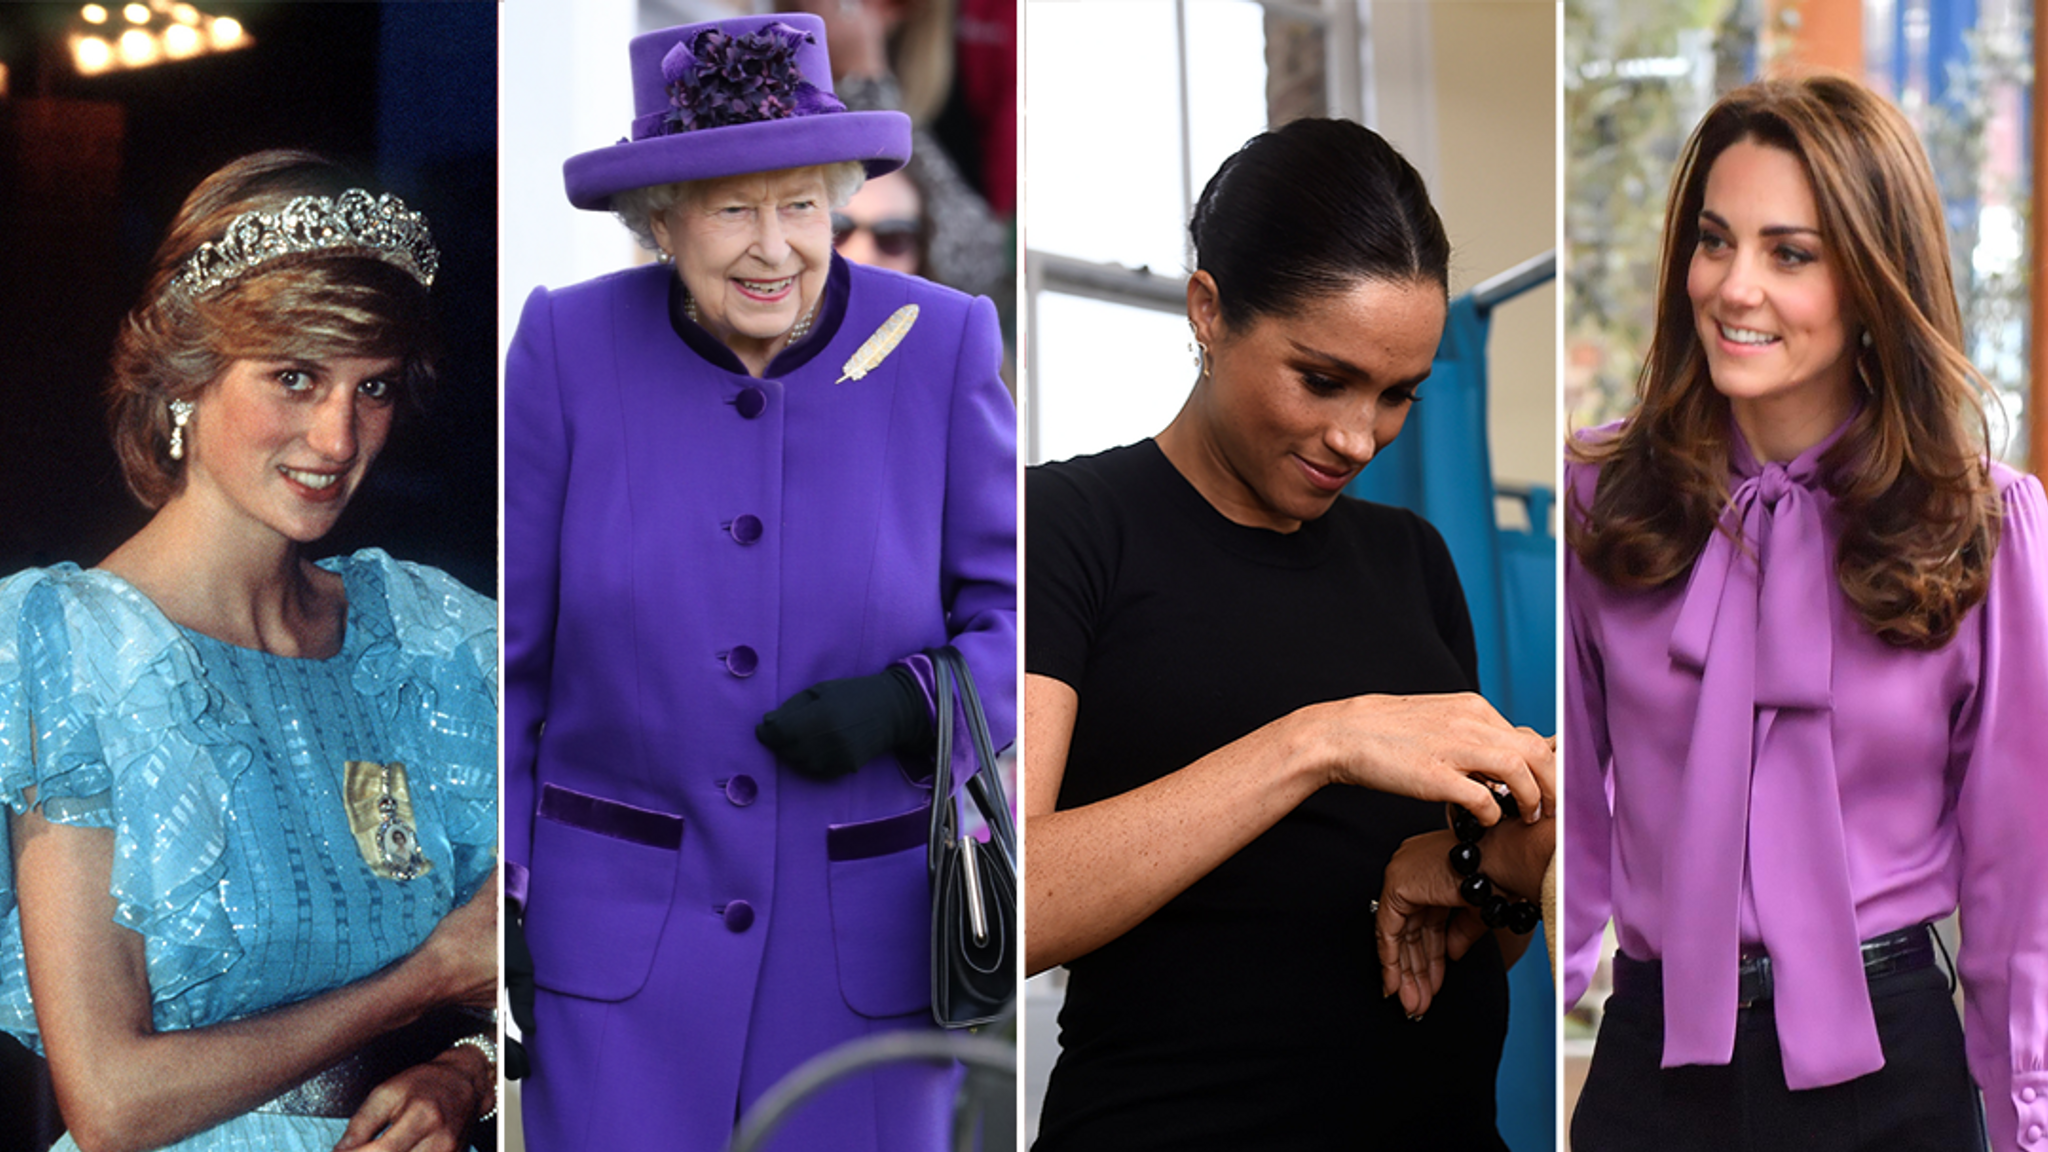 'More than just a dress': Fashion and the Royal Family